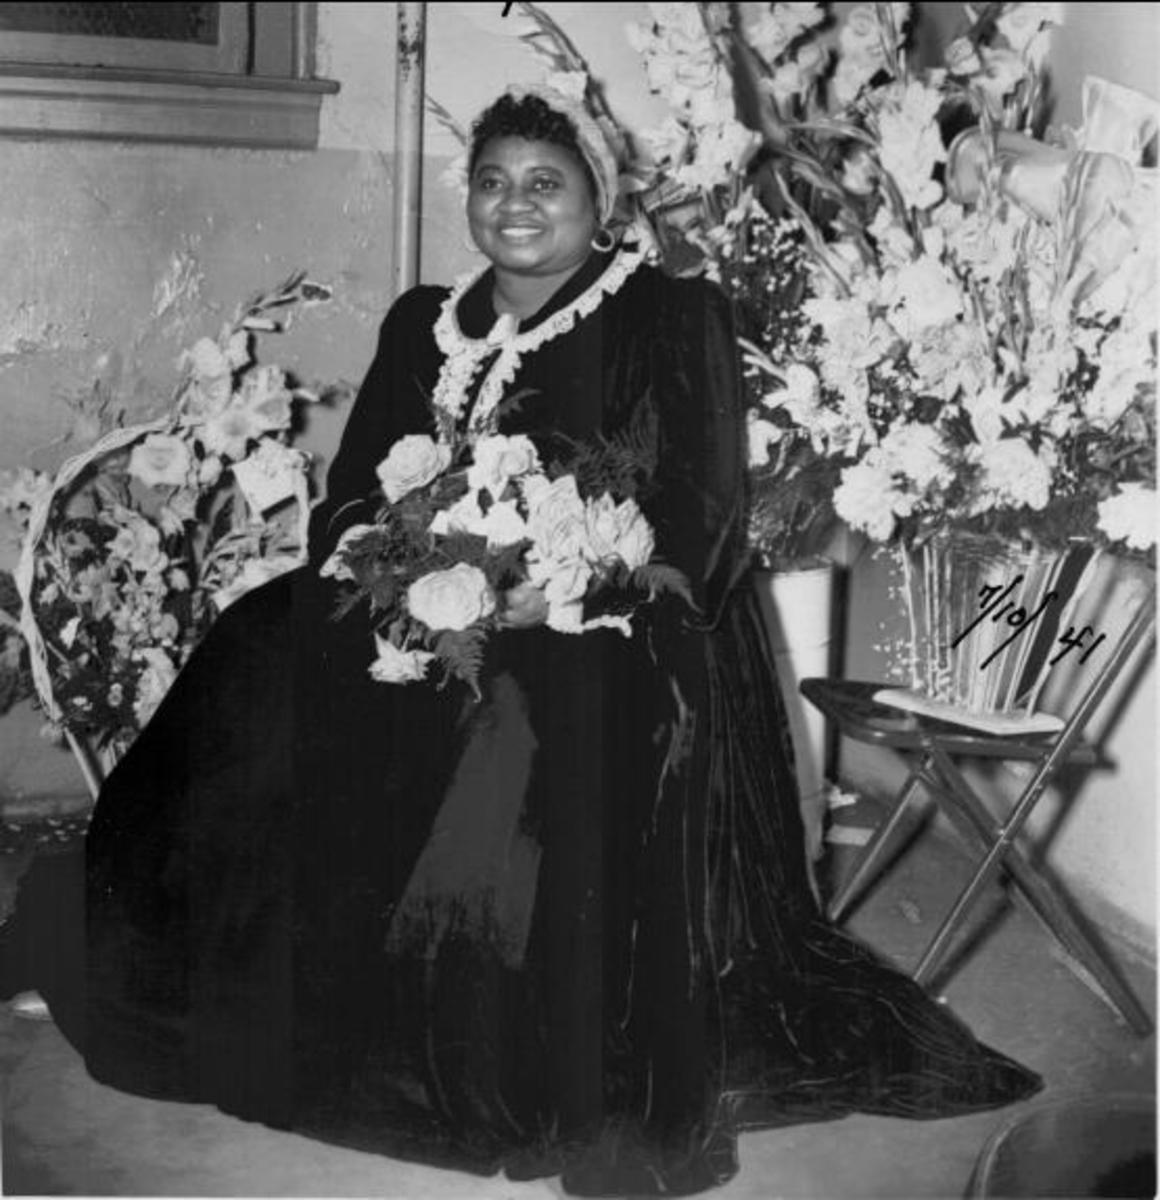 Hattie McDaniel was the first African-American to win an Academy Award. She won for her performance of Mammy in the classic film Gone with the wind in 1941.